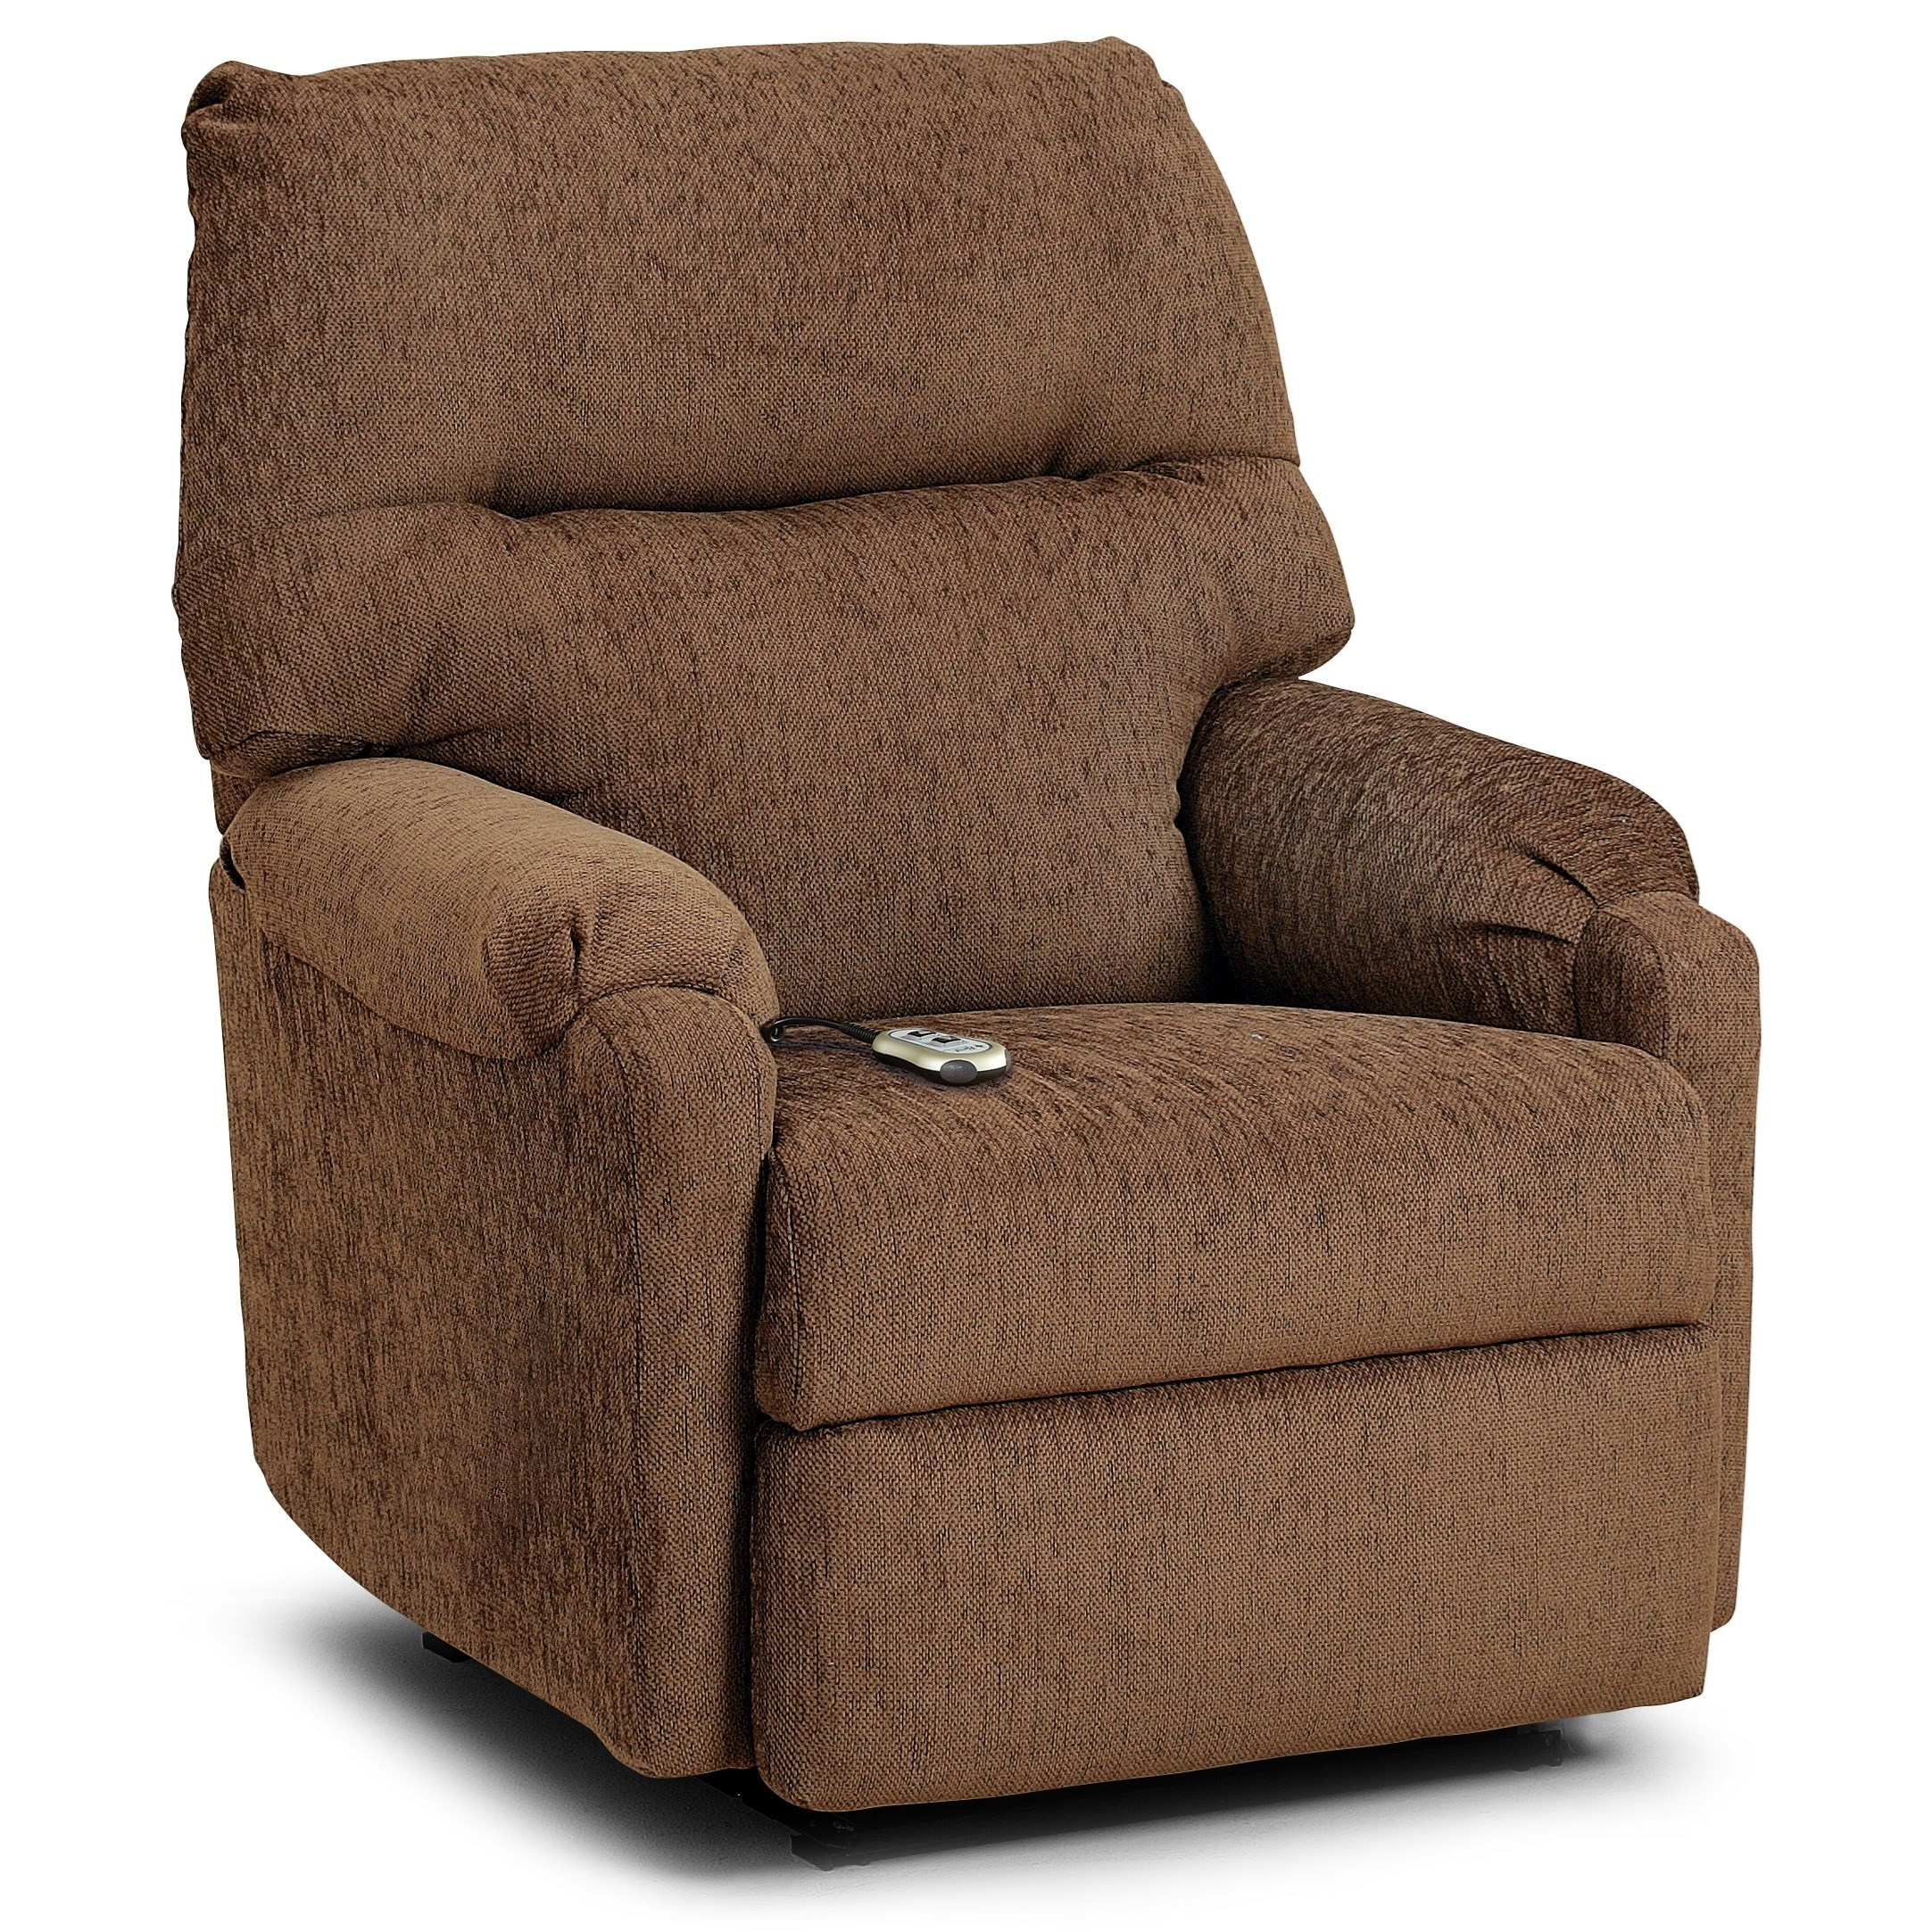 Best Home Furnishings Recliners - Petite JoJo Power Lift Recliner - Item Number 1AW31  sc 1 st  Wayside Furniture & Best Home Furnishings Recliners - Petite JoJo Power Lift Recliner ... islam-shia.org